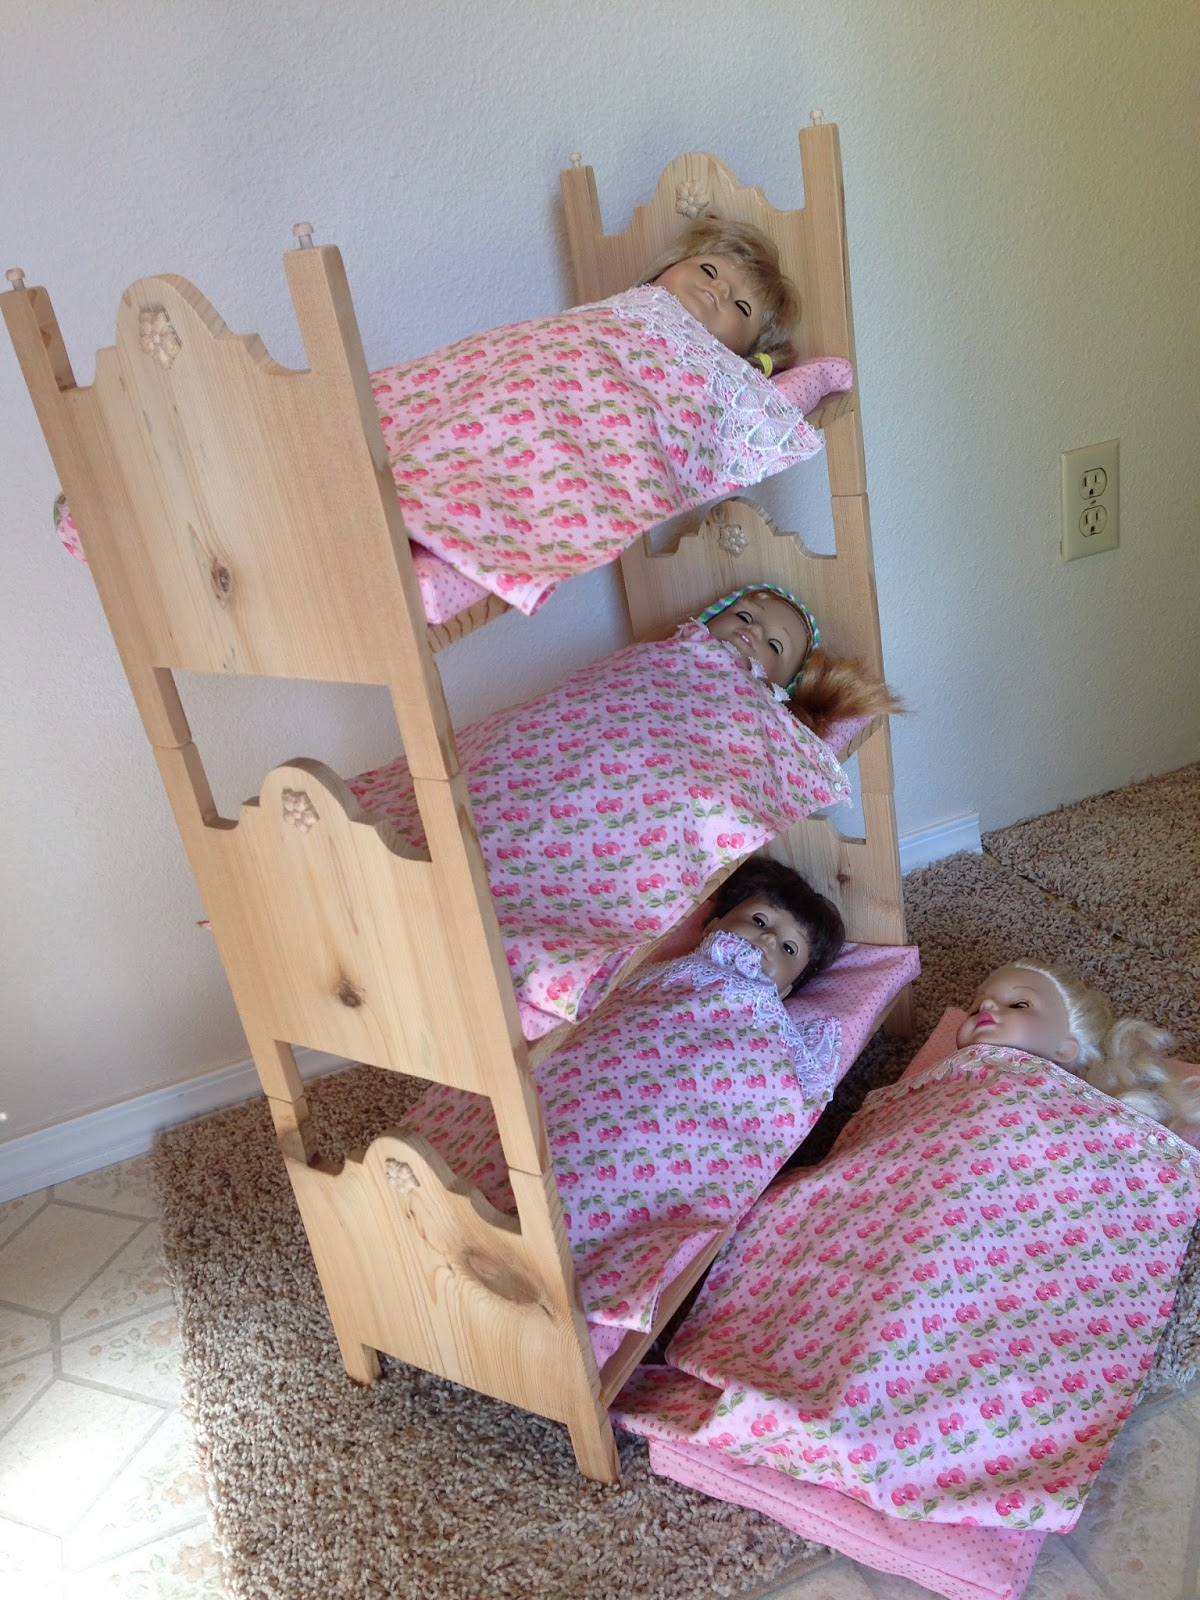 By Him And Her Make Your Own Triple Bunk Beds For American Girl